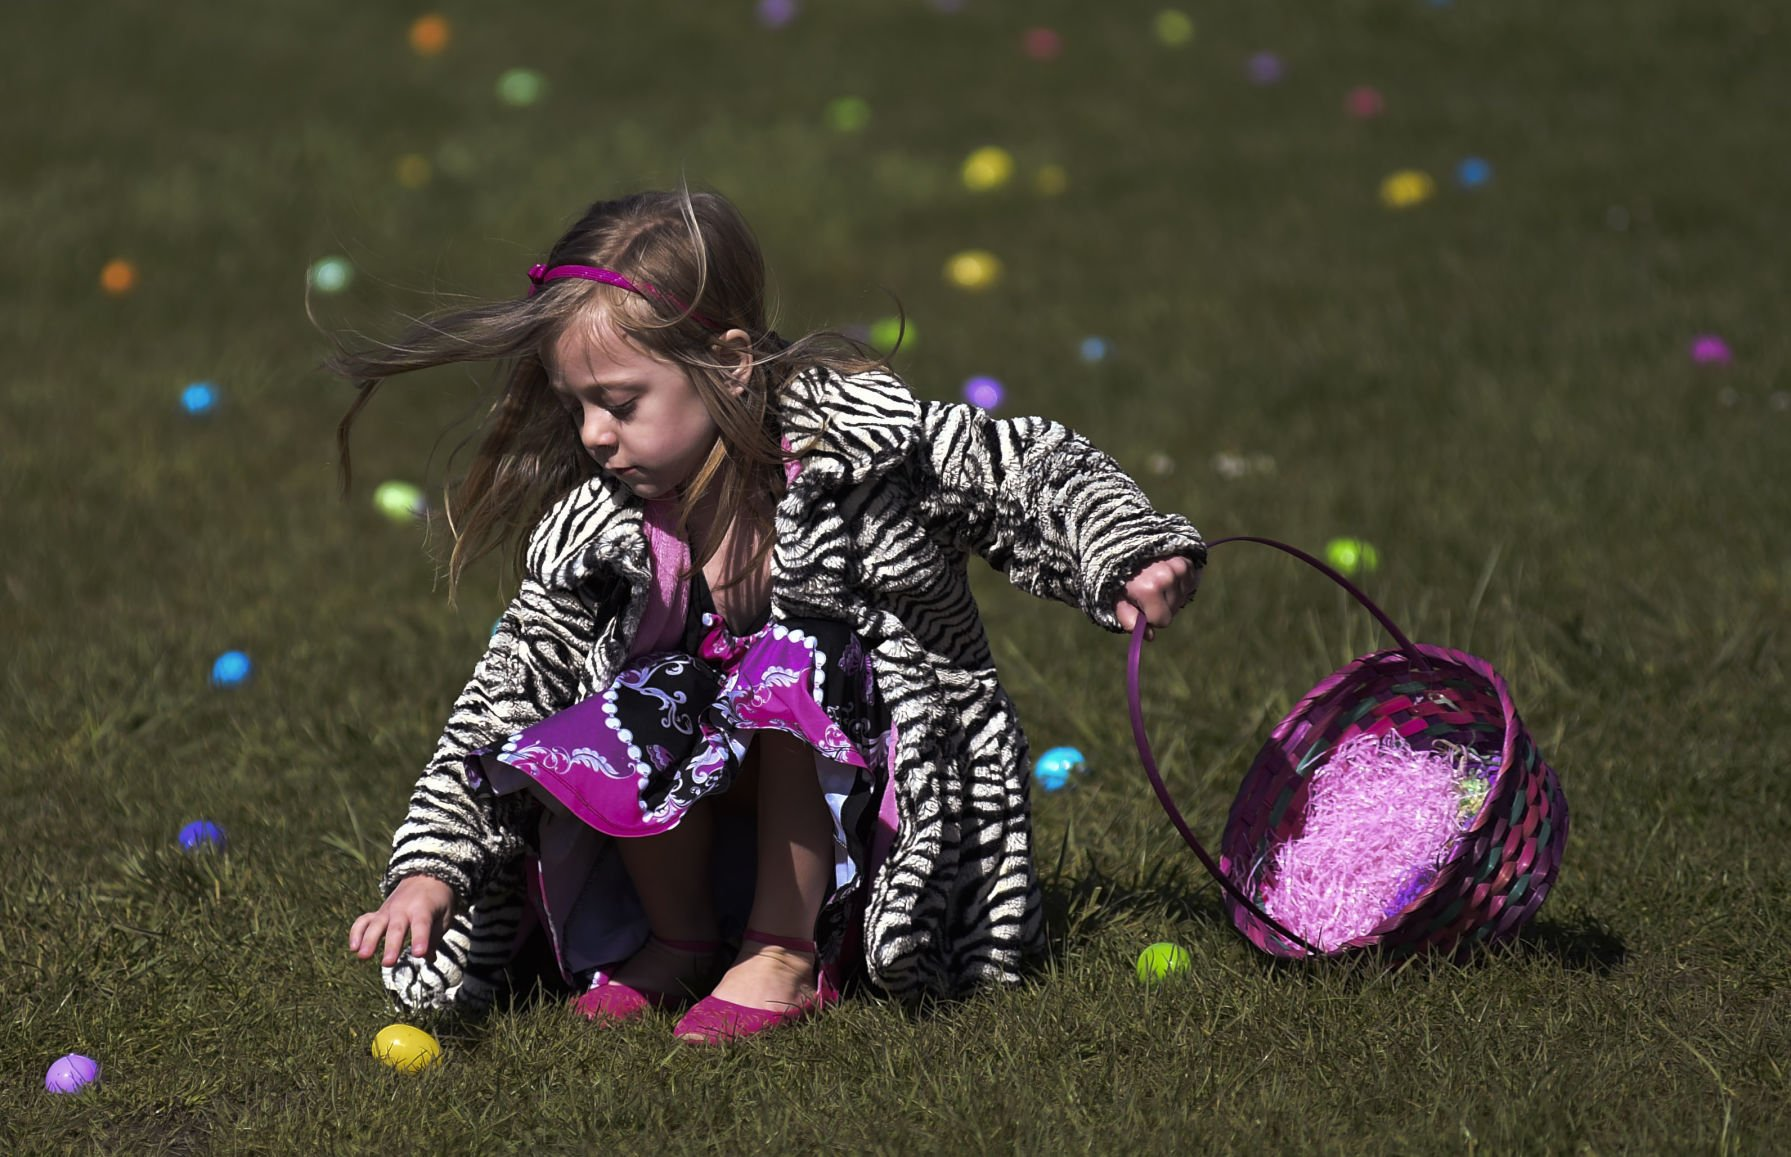 Annual Easter Egg Hunt Brings Out Droves Of Children To Allen Park